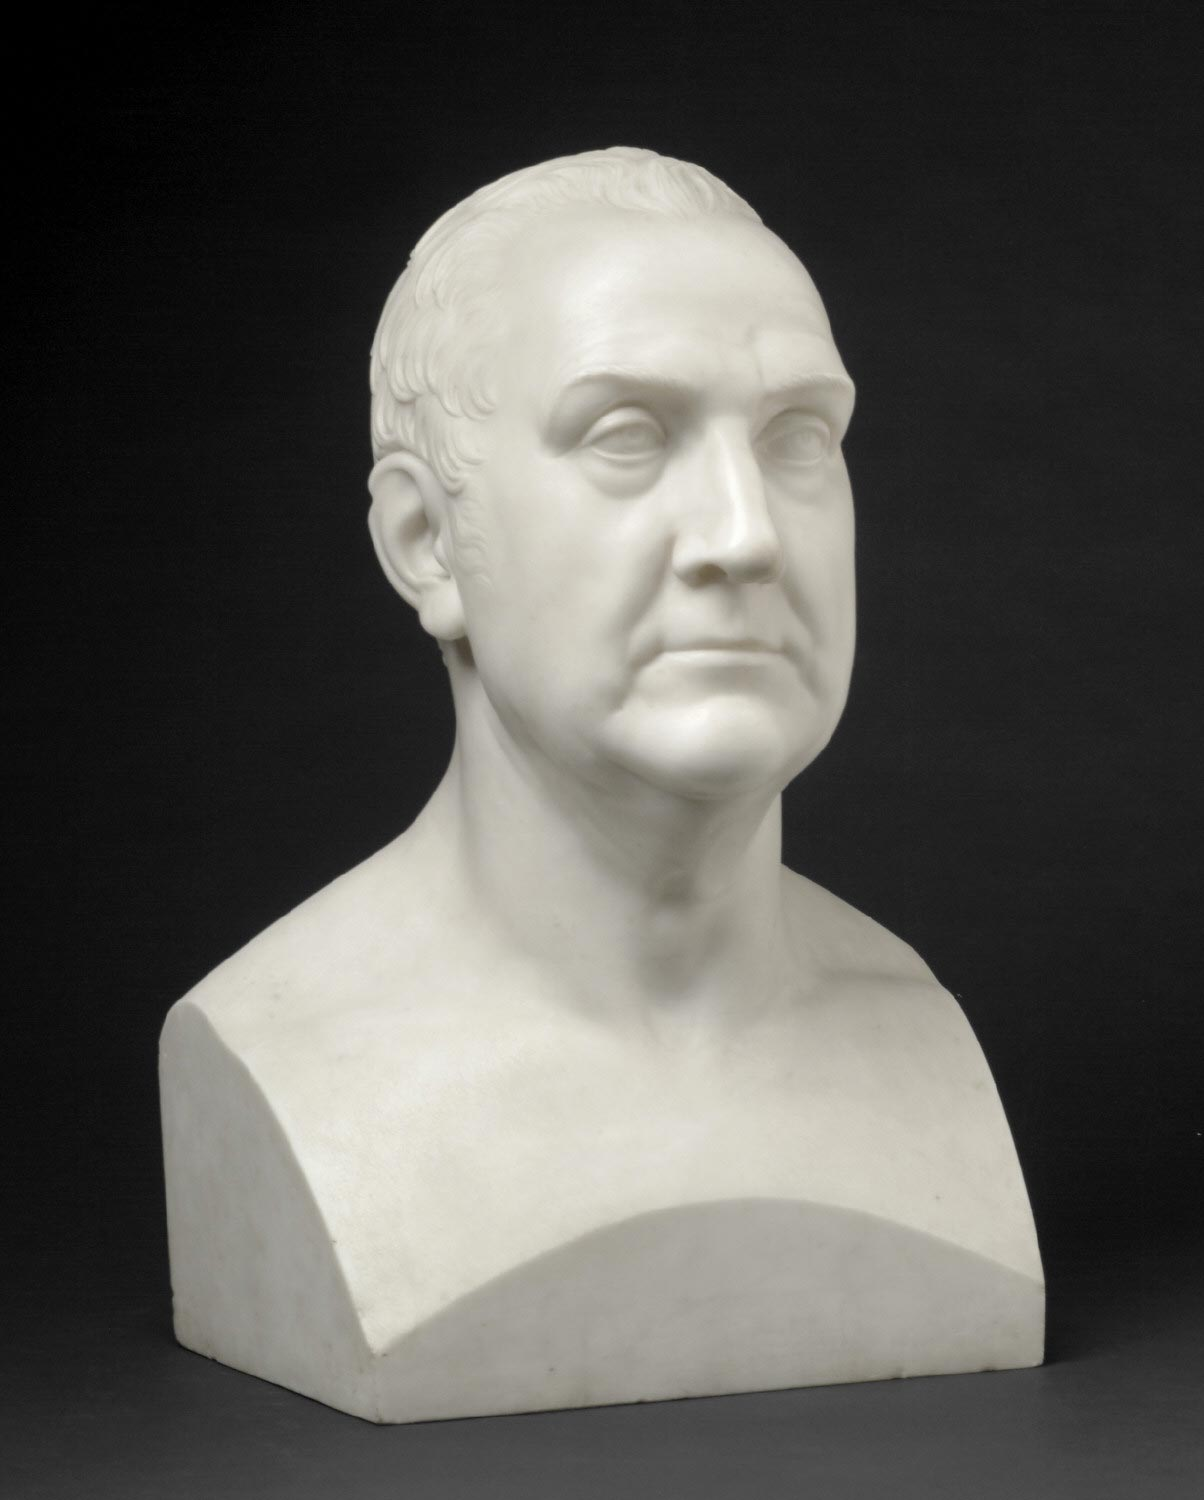 Bust of Admiral Edward Pellew, later First Viscount Exmouth (1757 - 1833)